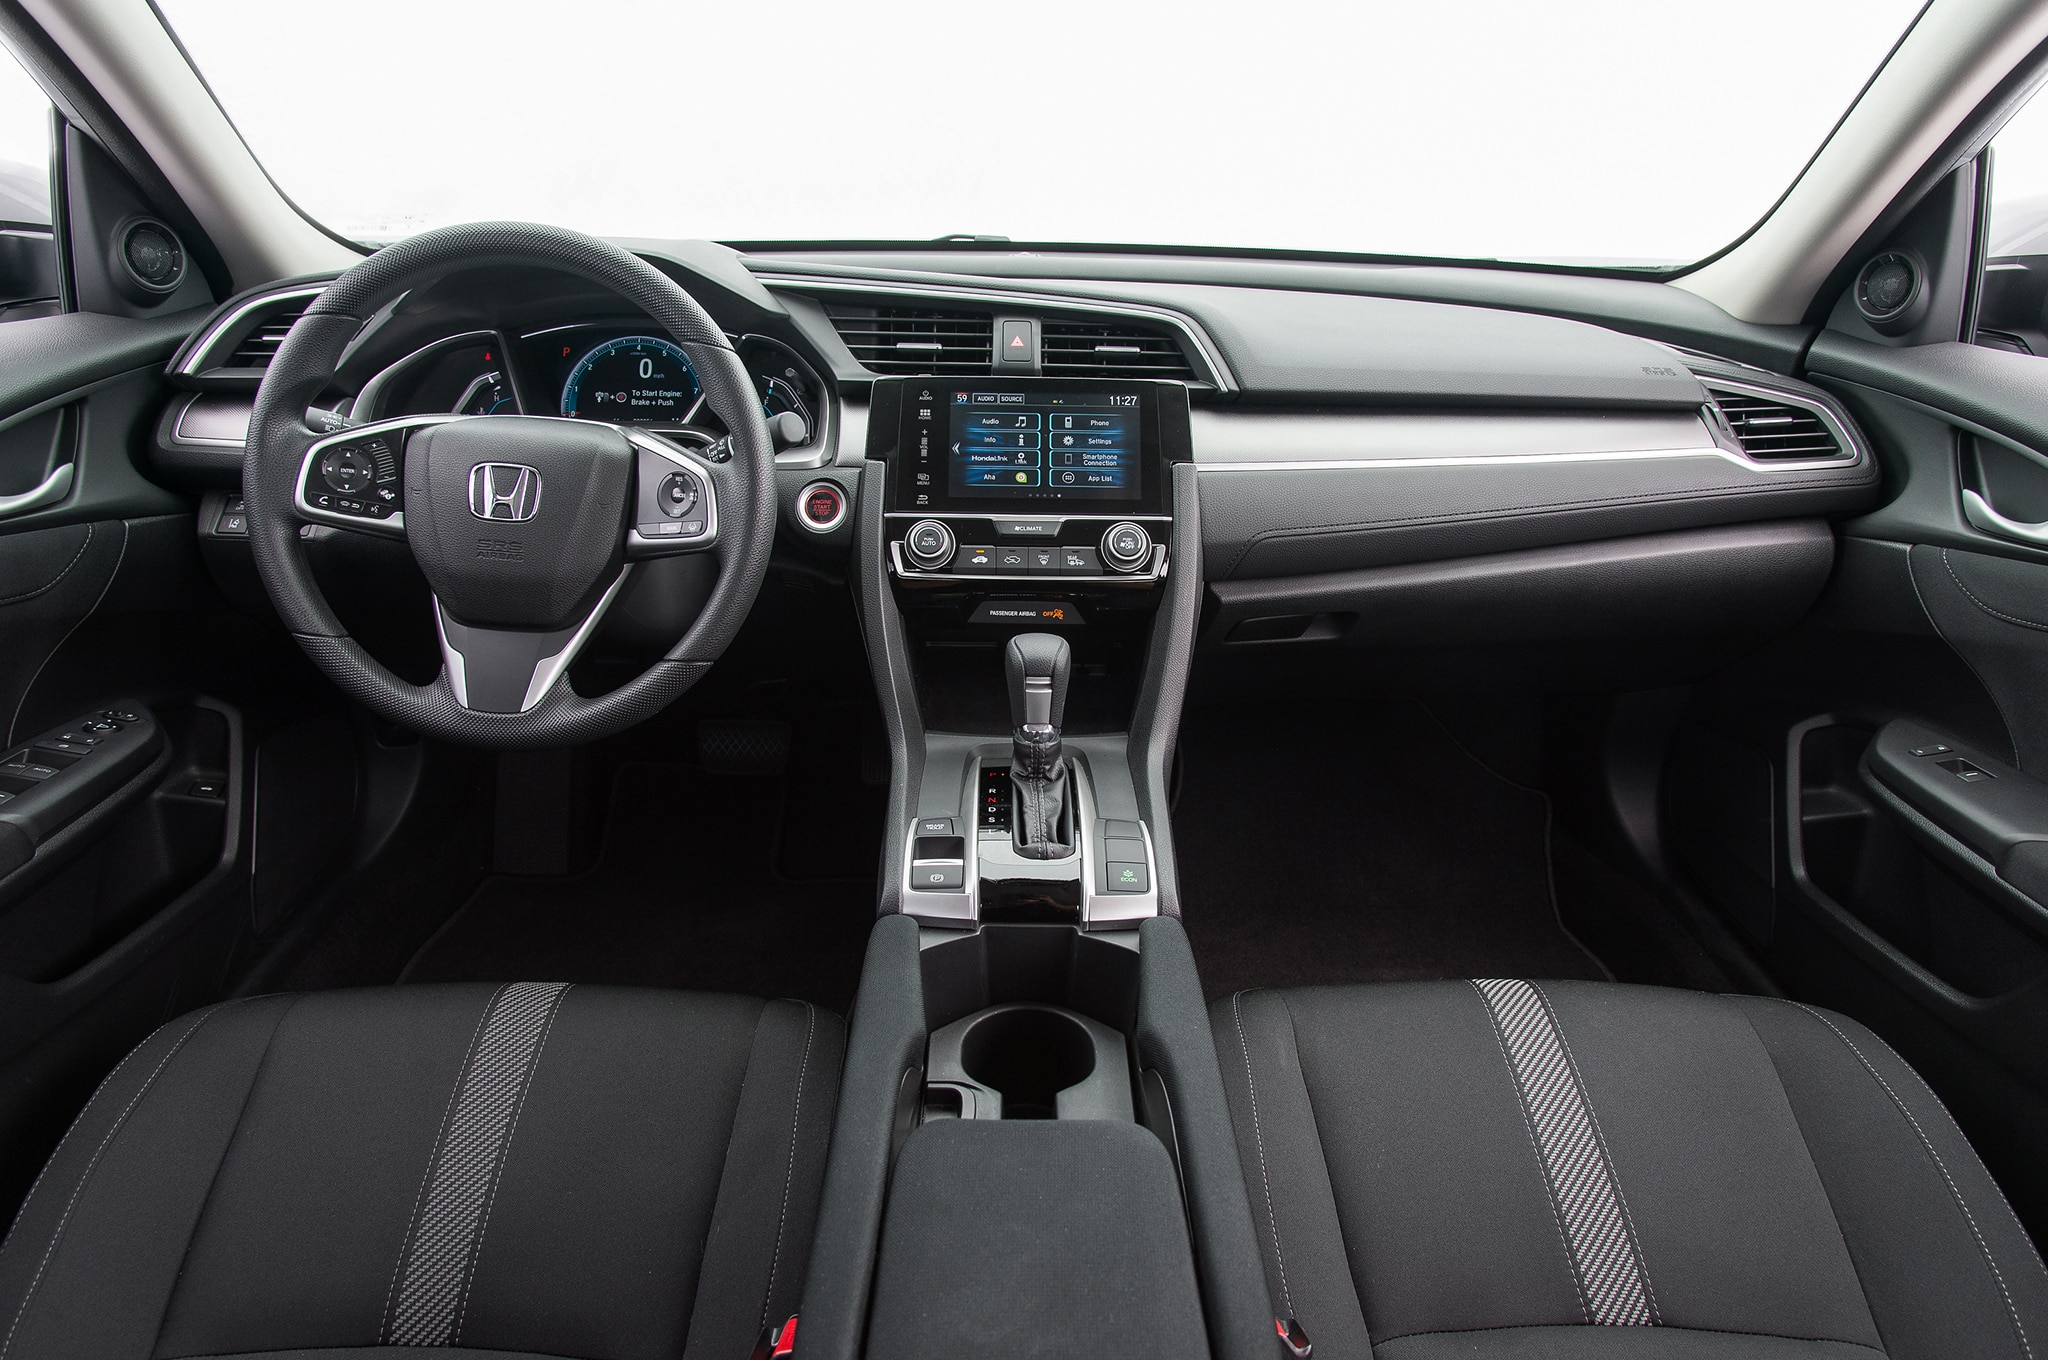 2016 honda civic ex interior motor trend en espa ol - 2016 honda civic si coupe interior ...